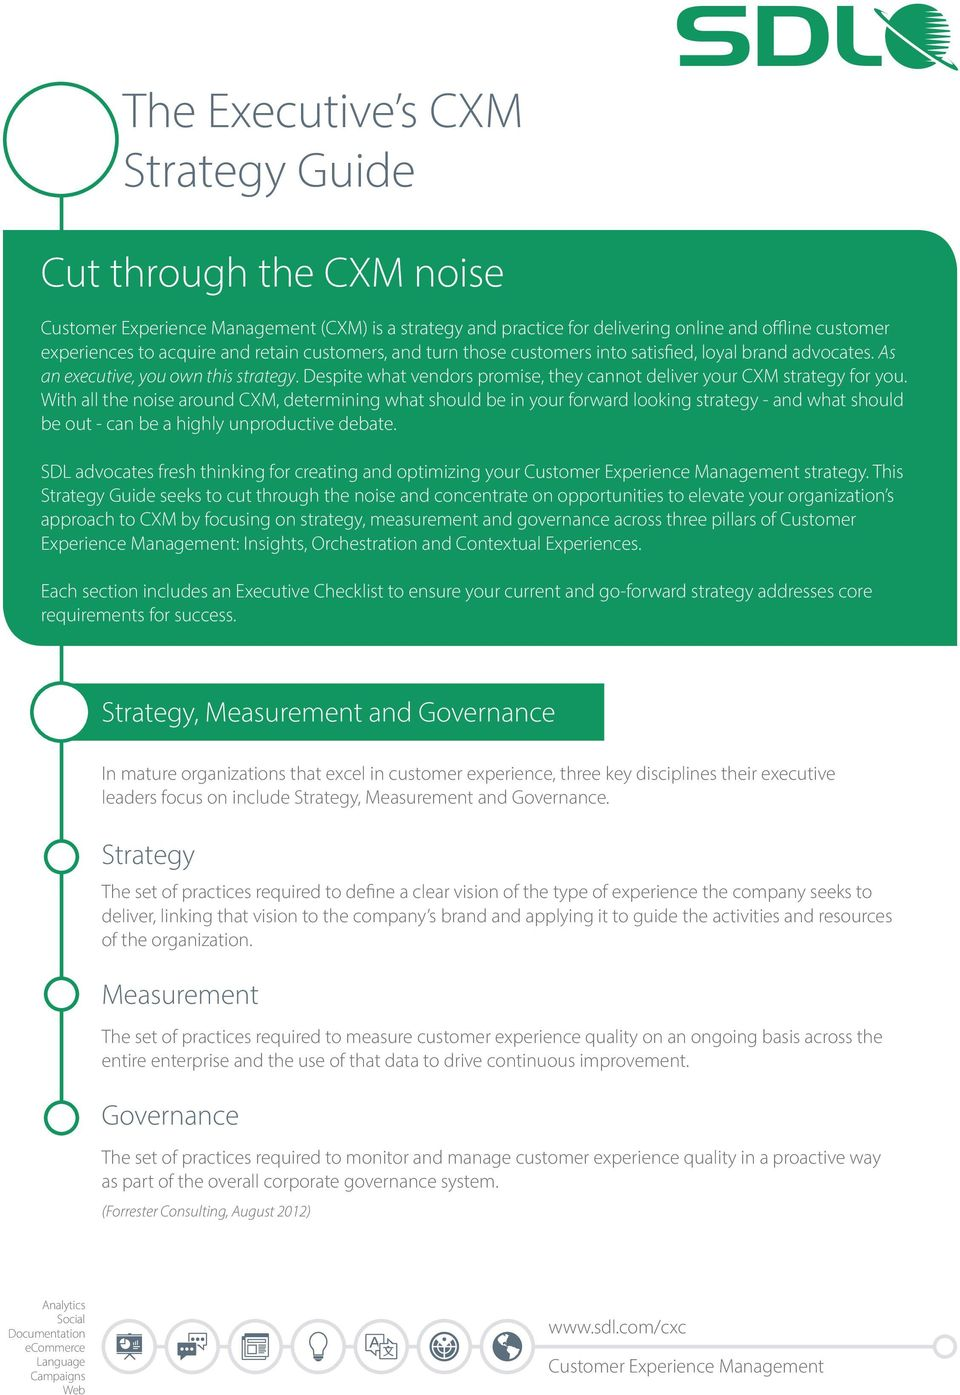 With all the noise around CXM, determining what should be in your forward looking strategy - and what should be out - can be a highly unproductive debate.